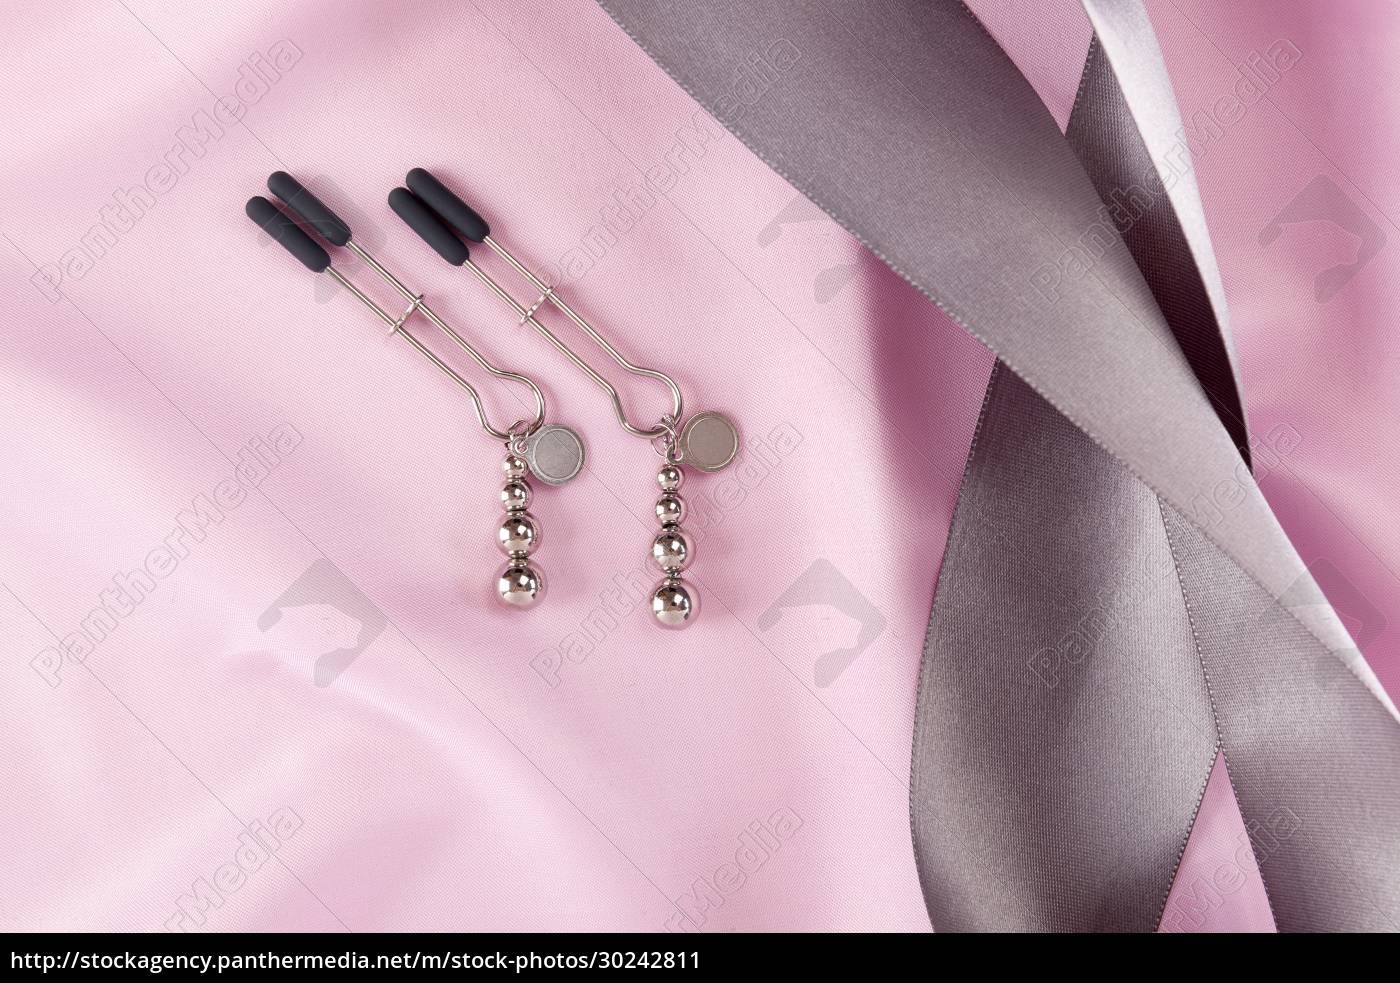 erotic, toys, -, nipple, clamps - 30242811